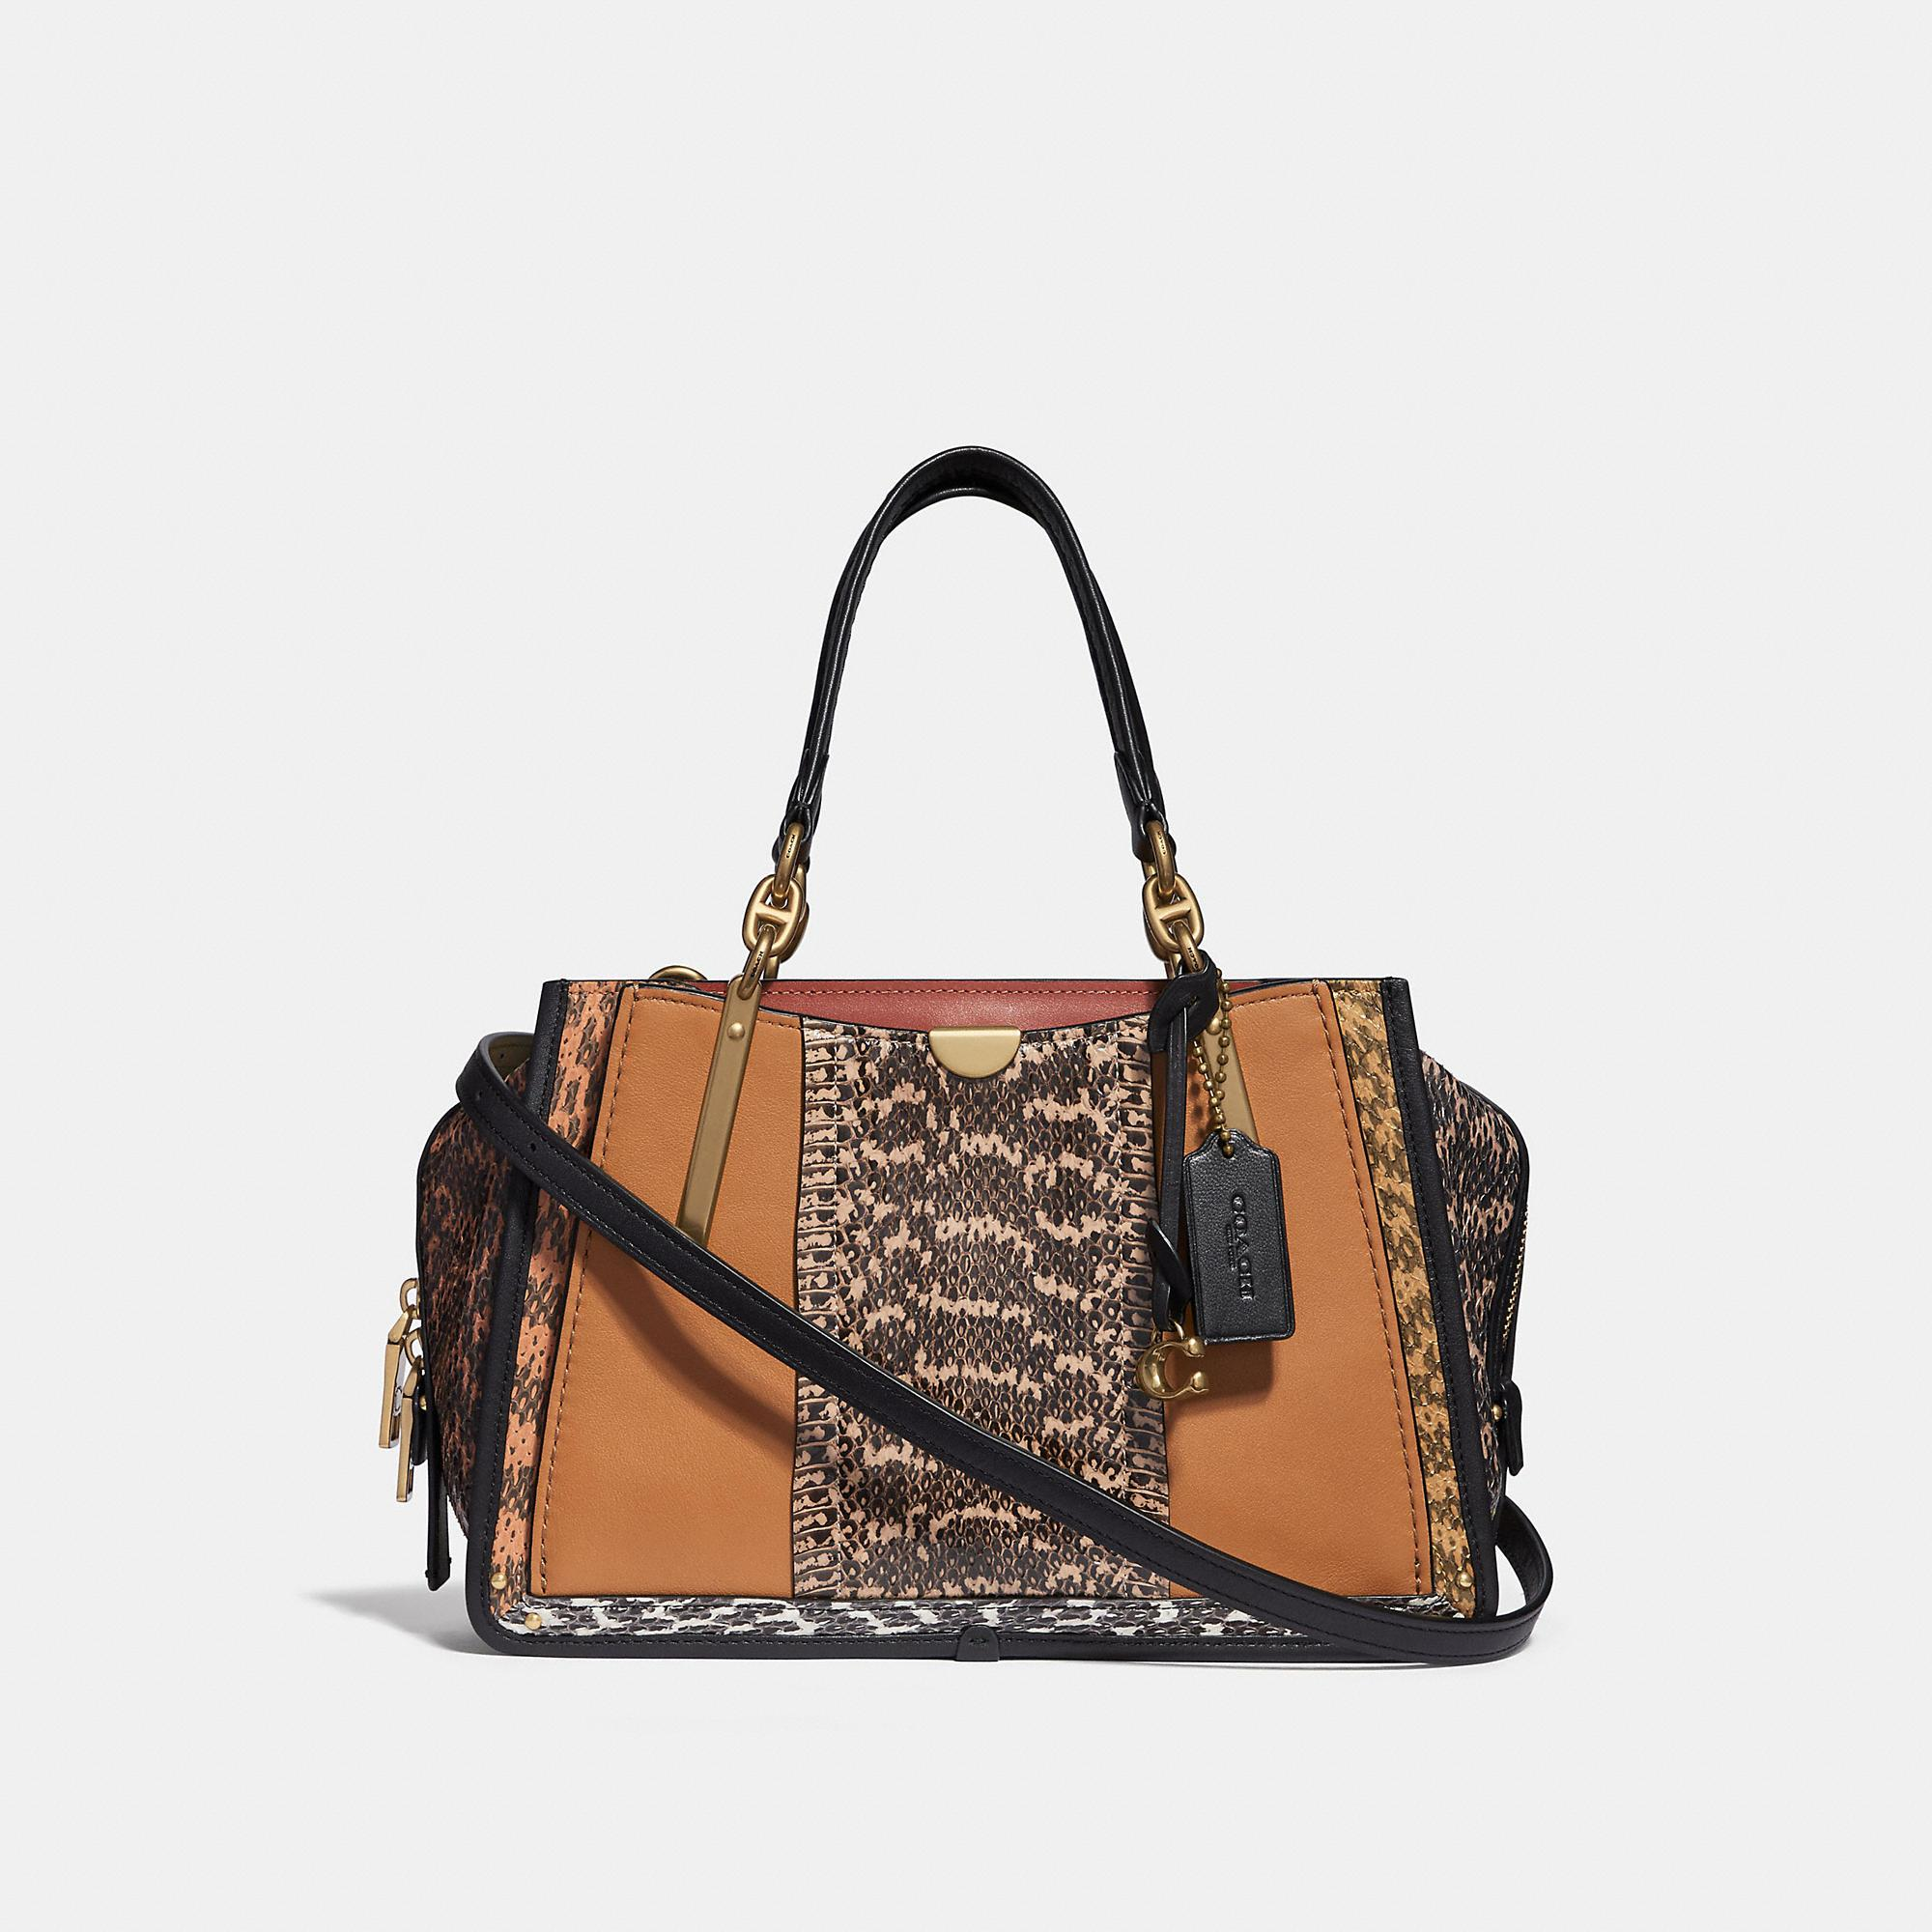 7434345e81d Coach Dreamer In Colorblock With Snakeskin Detail - Women's In Multi/Brass